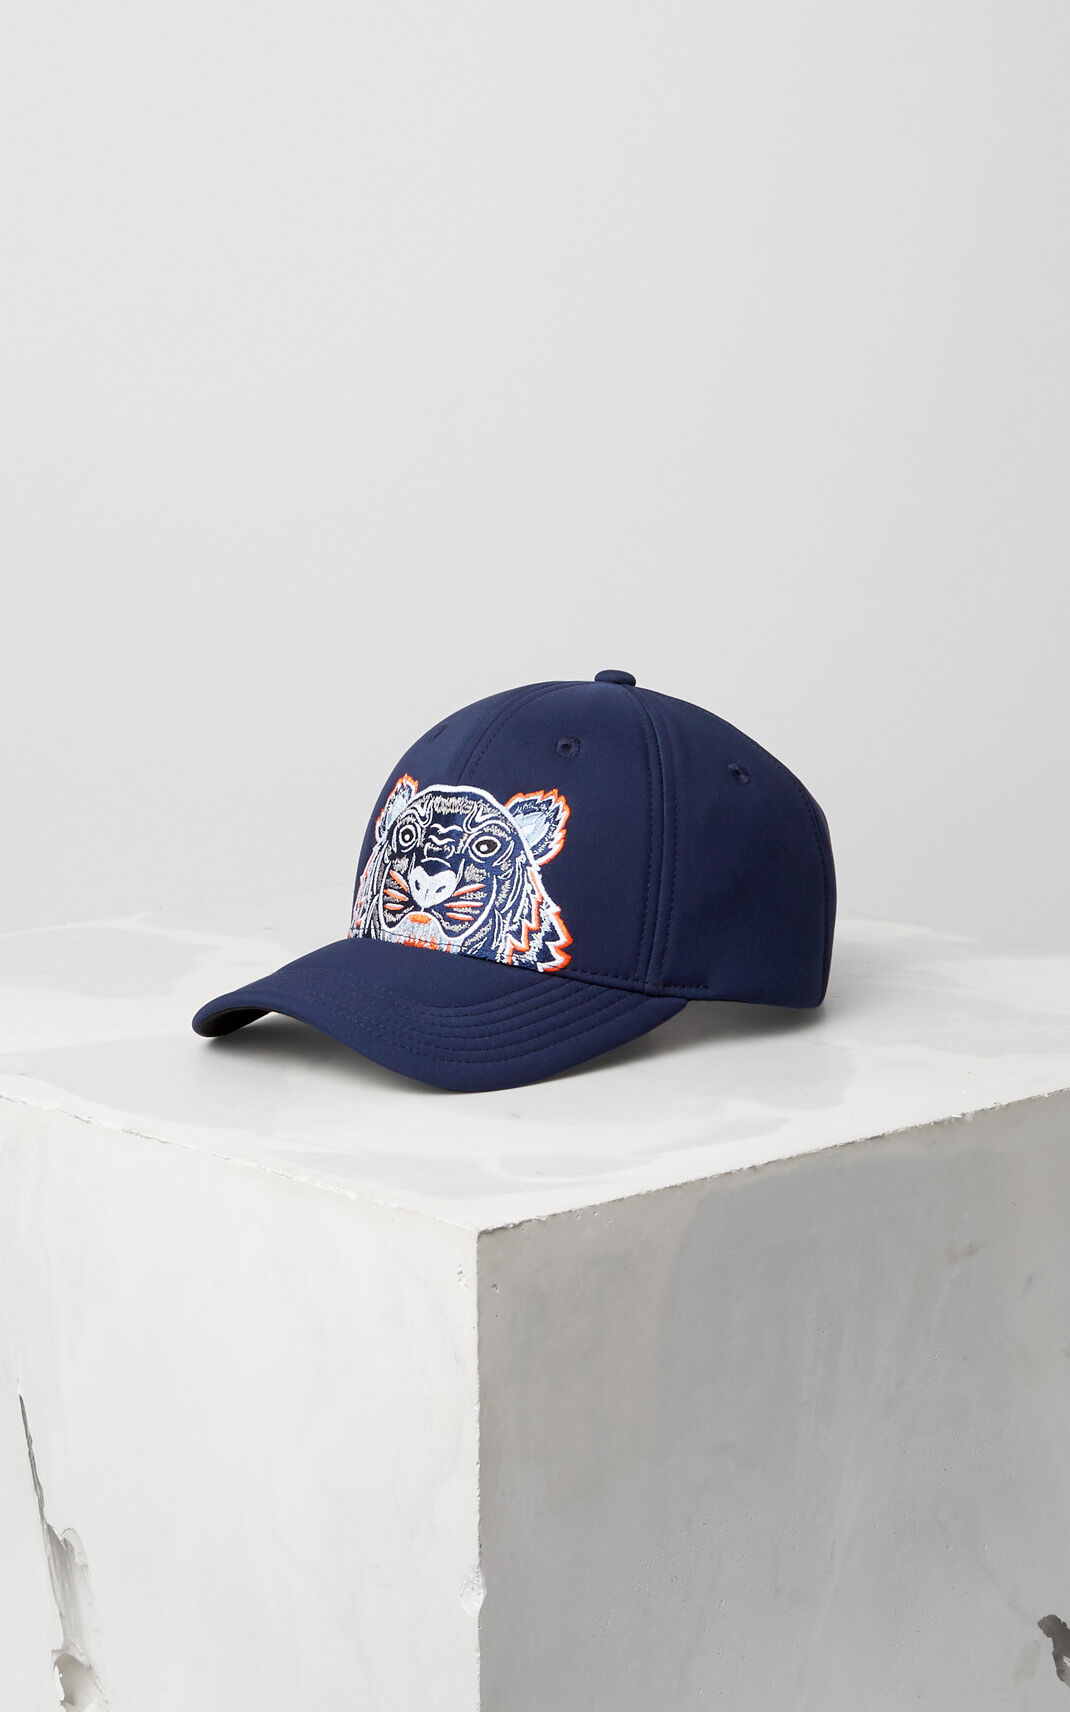 NAVY BLUE Neoprene Tiger cap for unisex KENZO ... 0a0626d715a